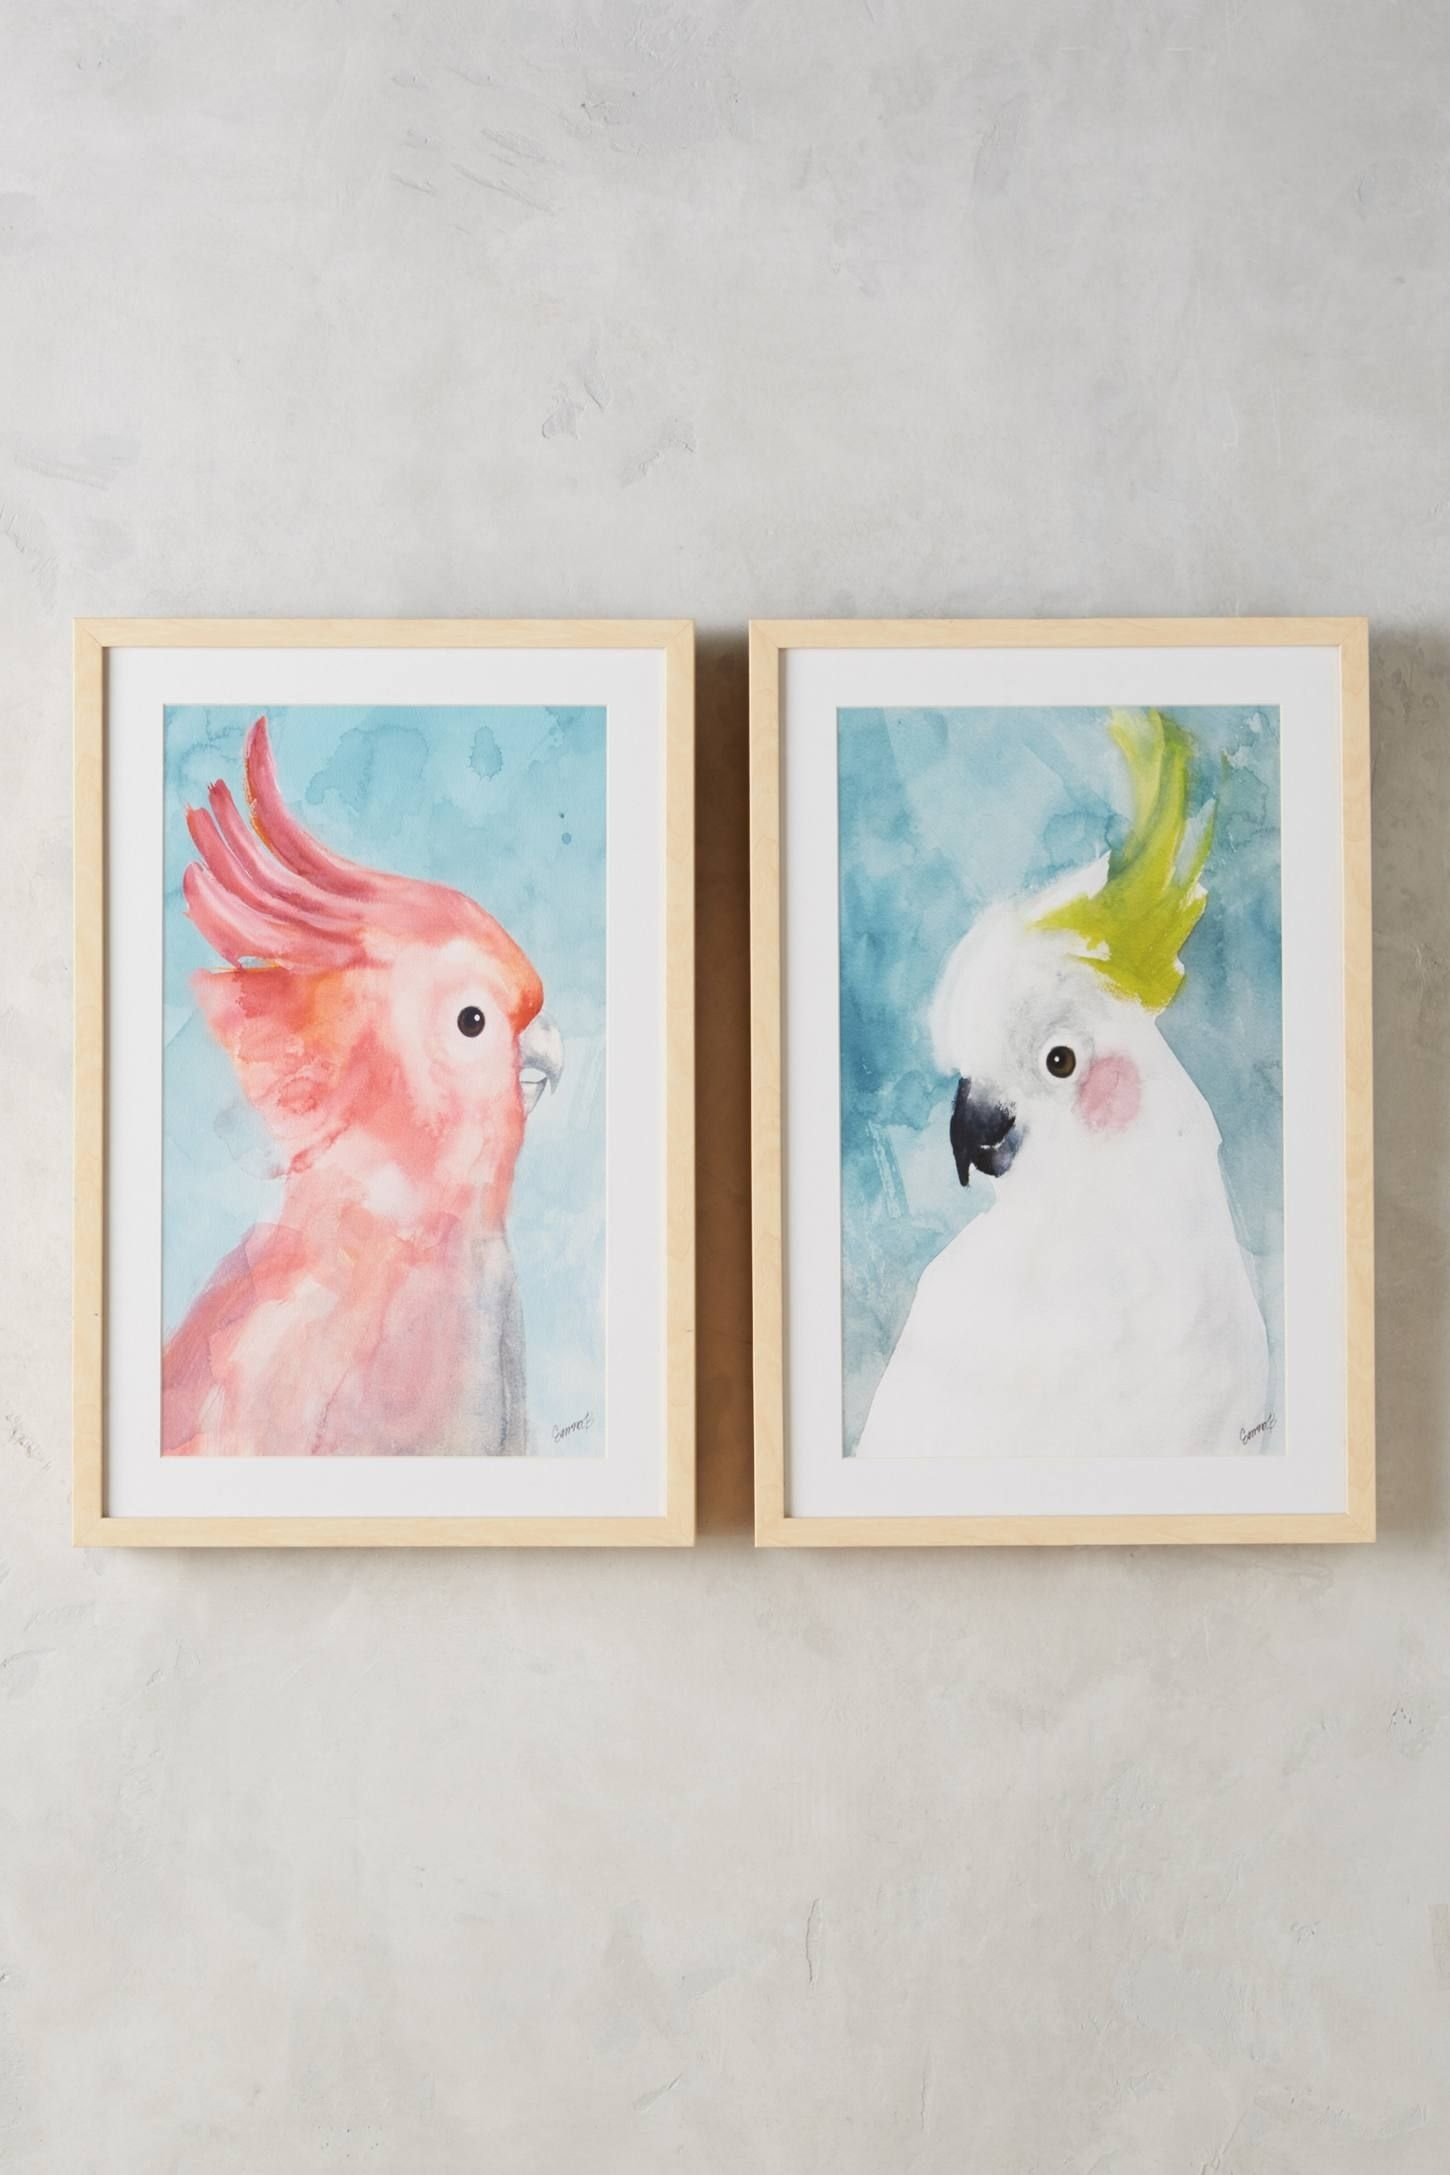 Shop The Fanciful Wall Art And More Anthropologie At Anthropologie intended for Anthropologie Wall Art (Image 18 of 20)